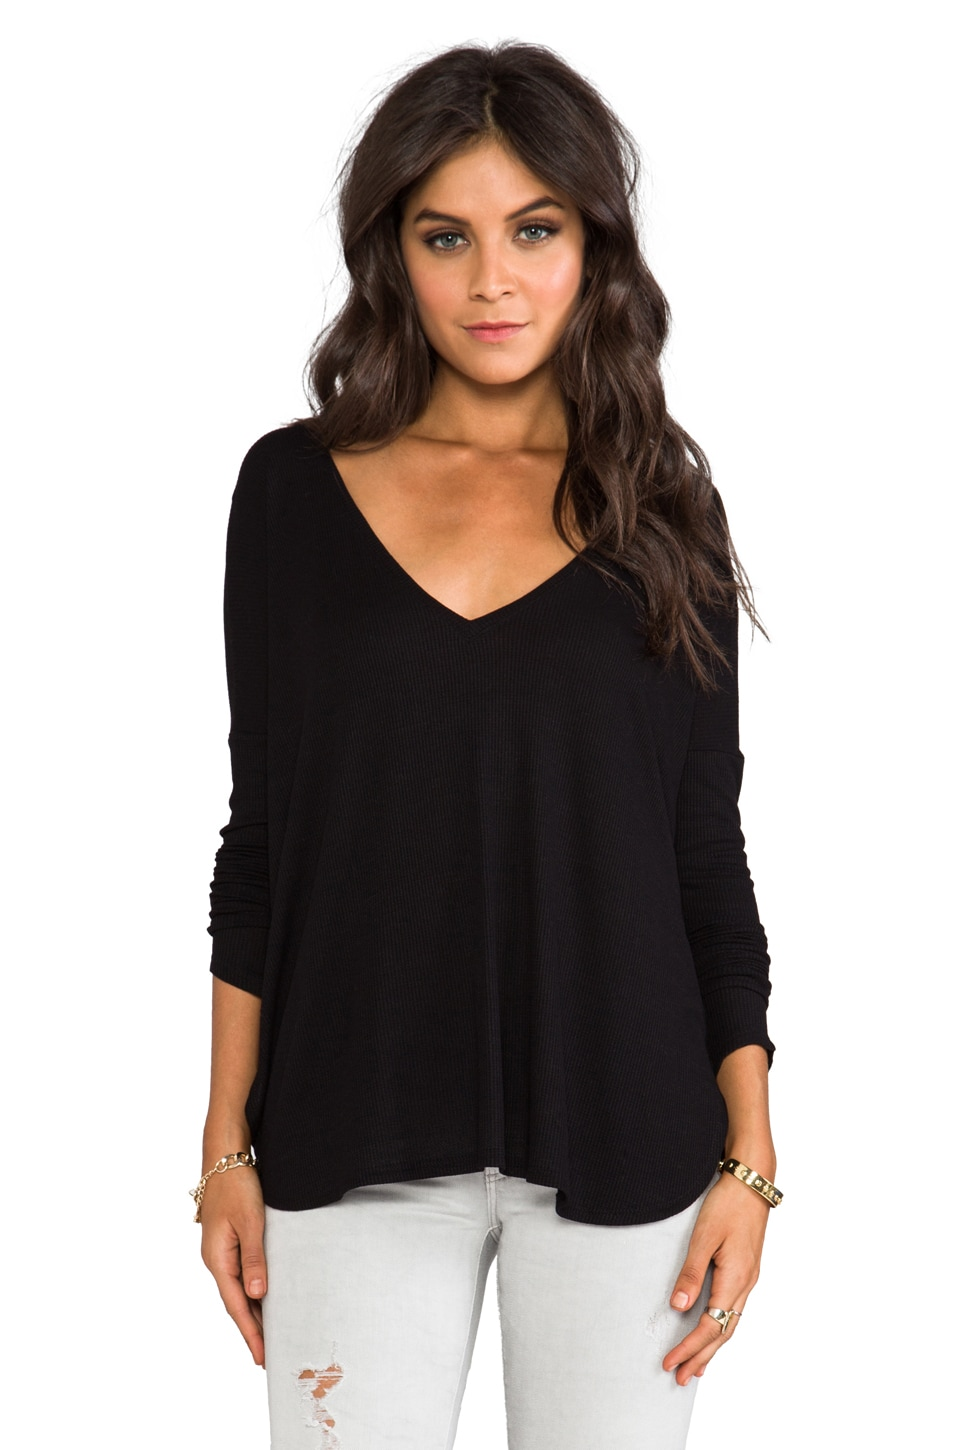 Blue Life V Neck Thermal Top in Faded Black